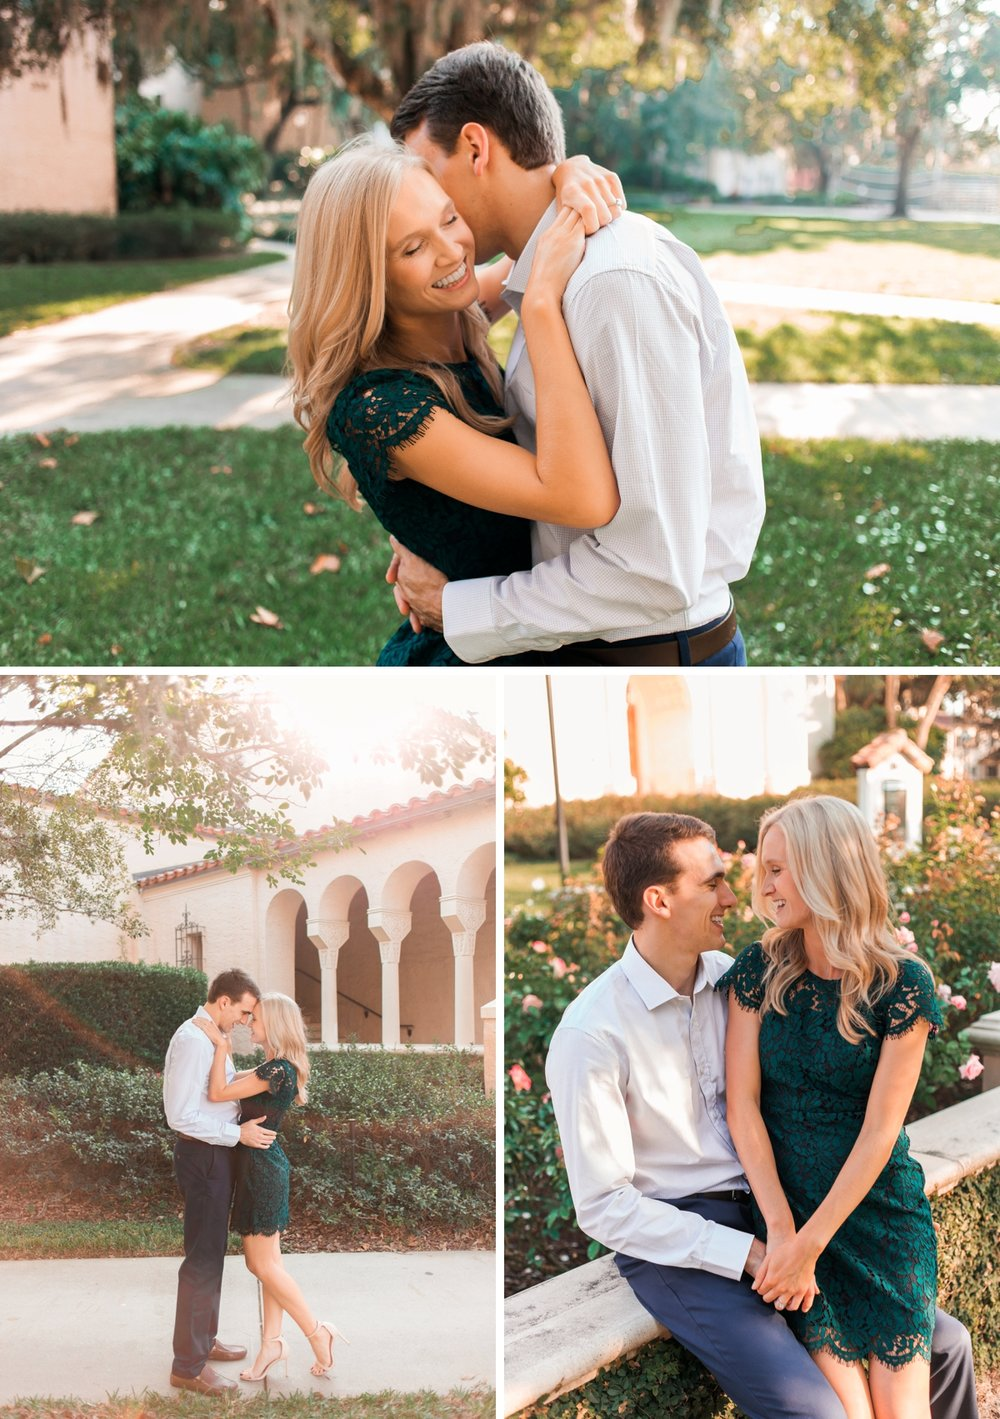 rollins-college-winter-park-orlando-engagement-photography_0002.jpg